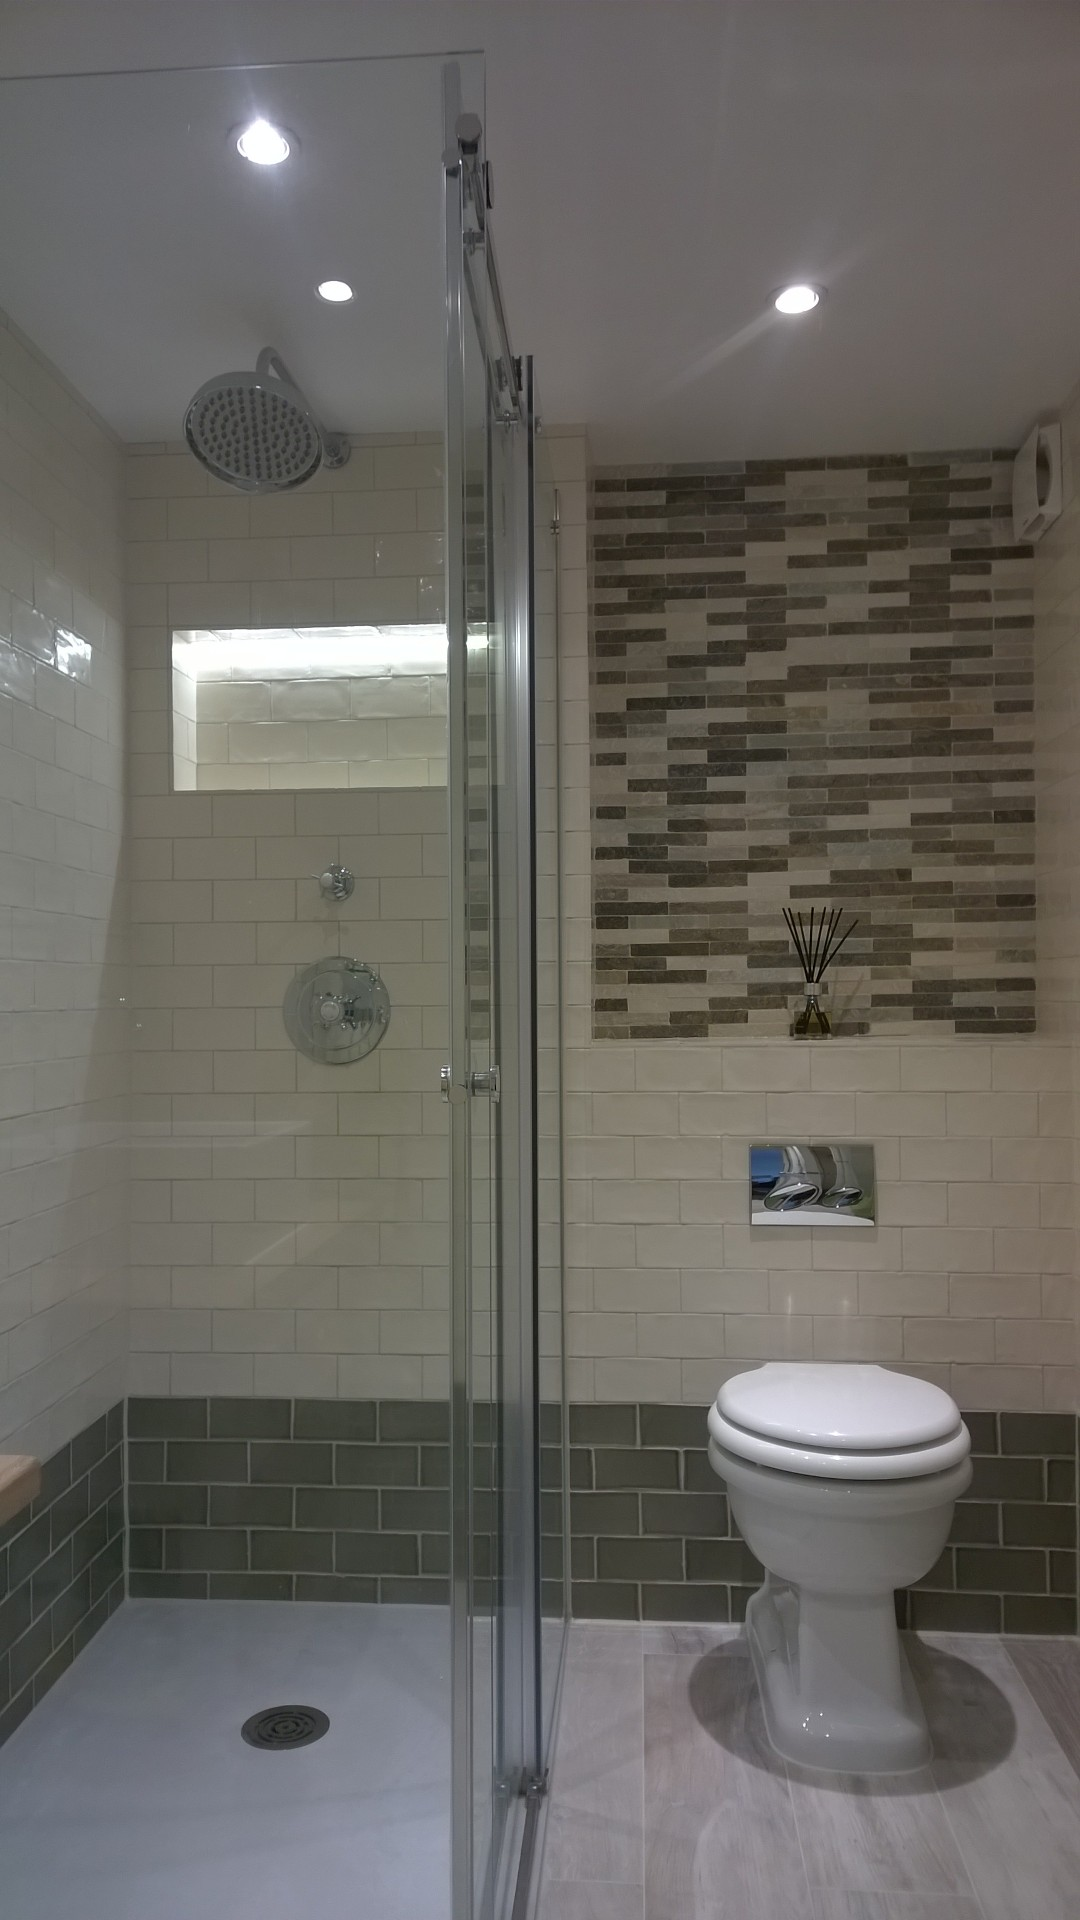 Walk in shower in an ensuite bathroom